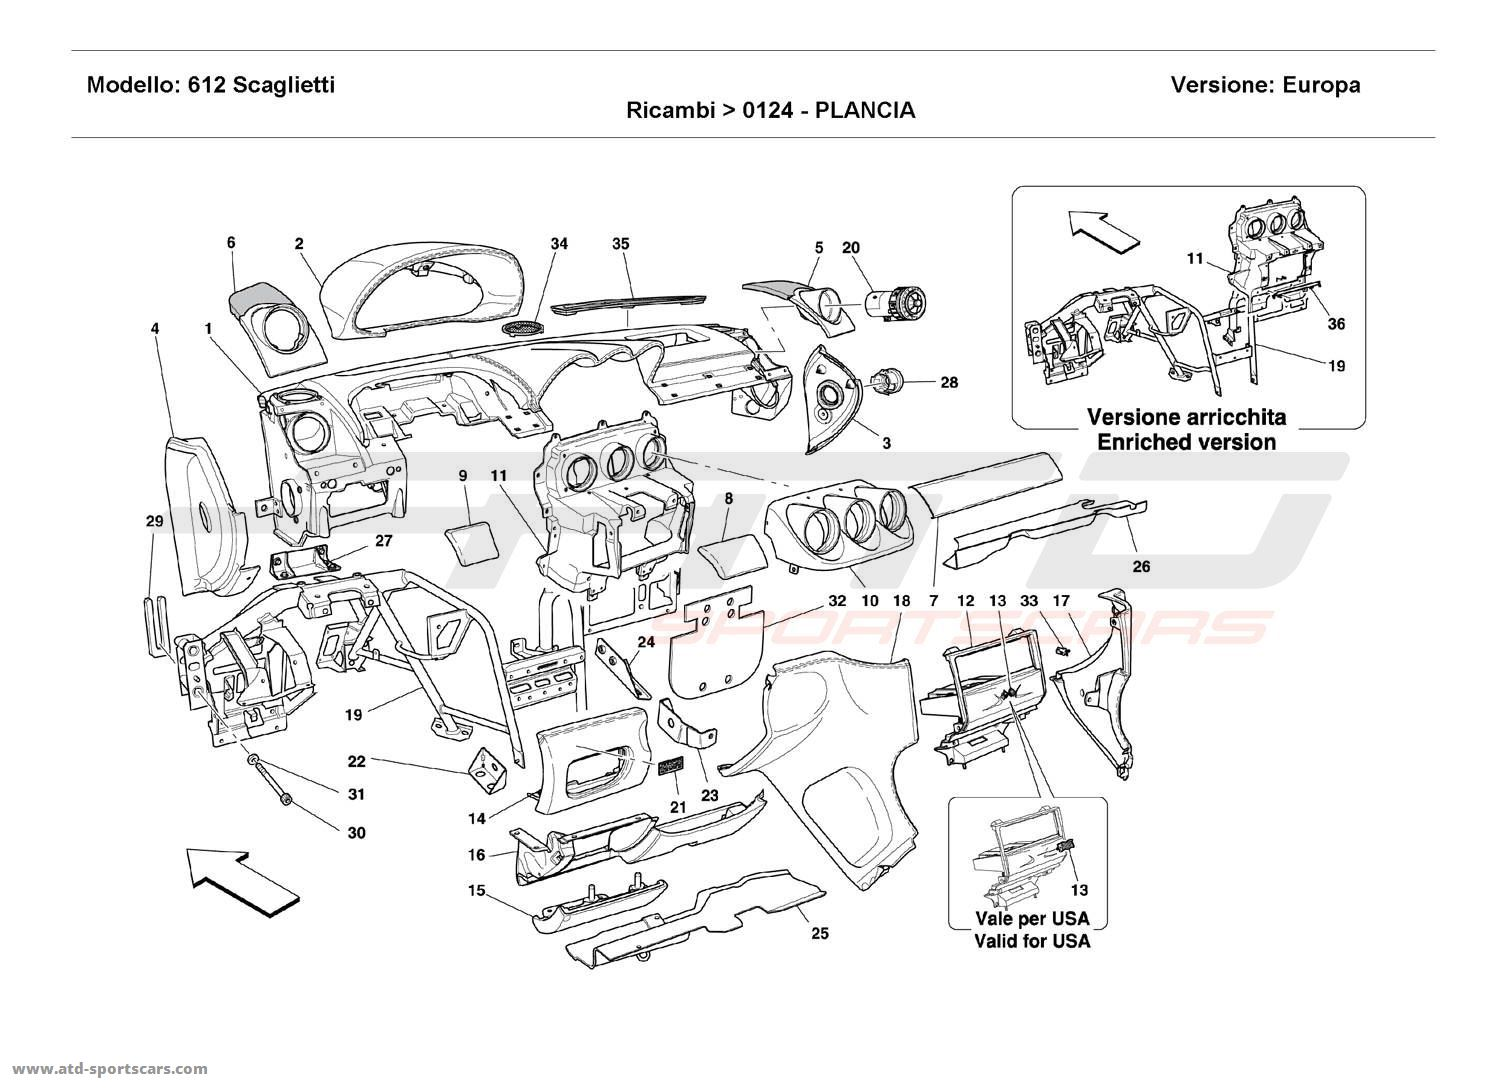 Ferrari 612 Scaglietti DASHBOARD parts at ATD-Sportscars